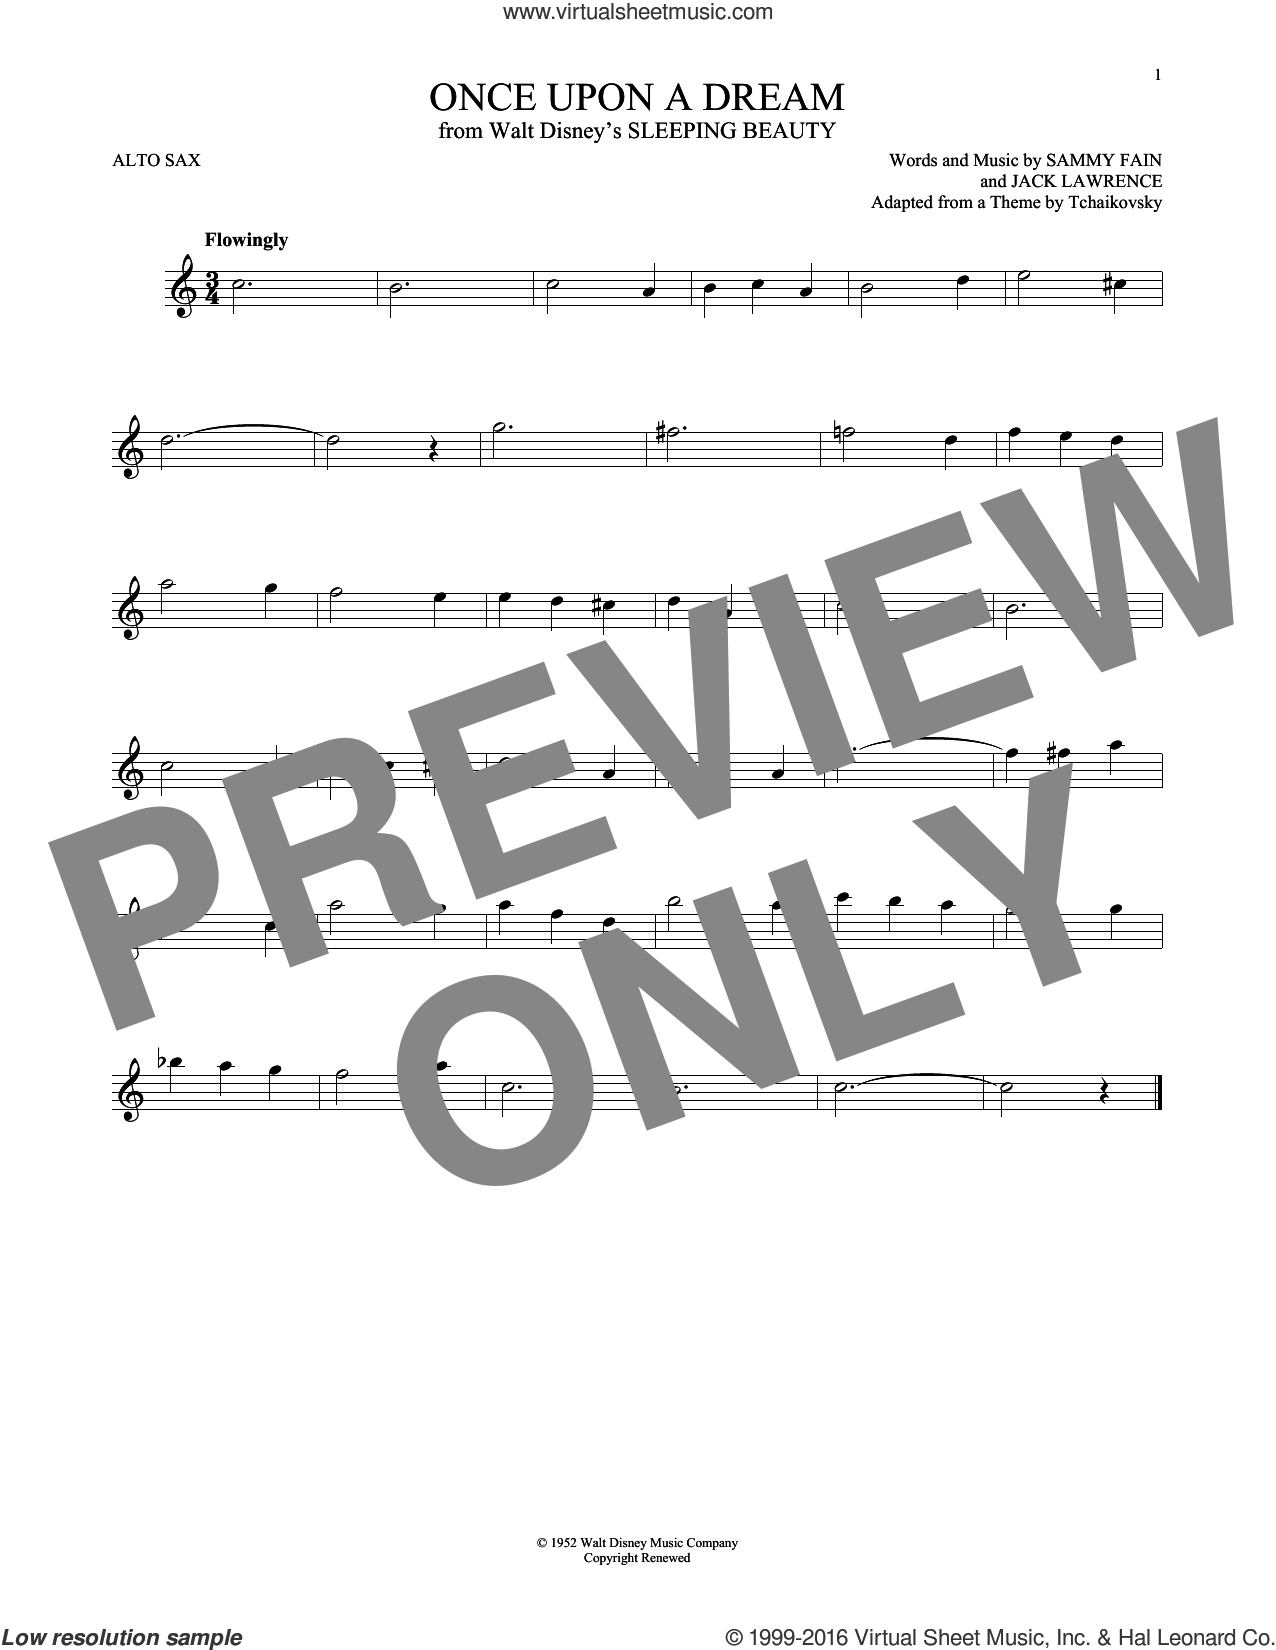 Once Upon A Dream sheet music for alto saxophone solo by Sammy Fain and Jack Lawrence, intermediate skill level